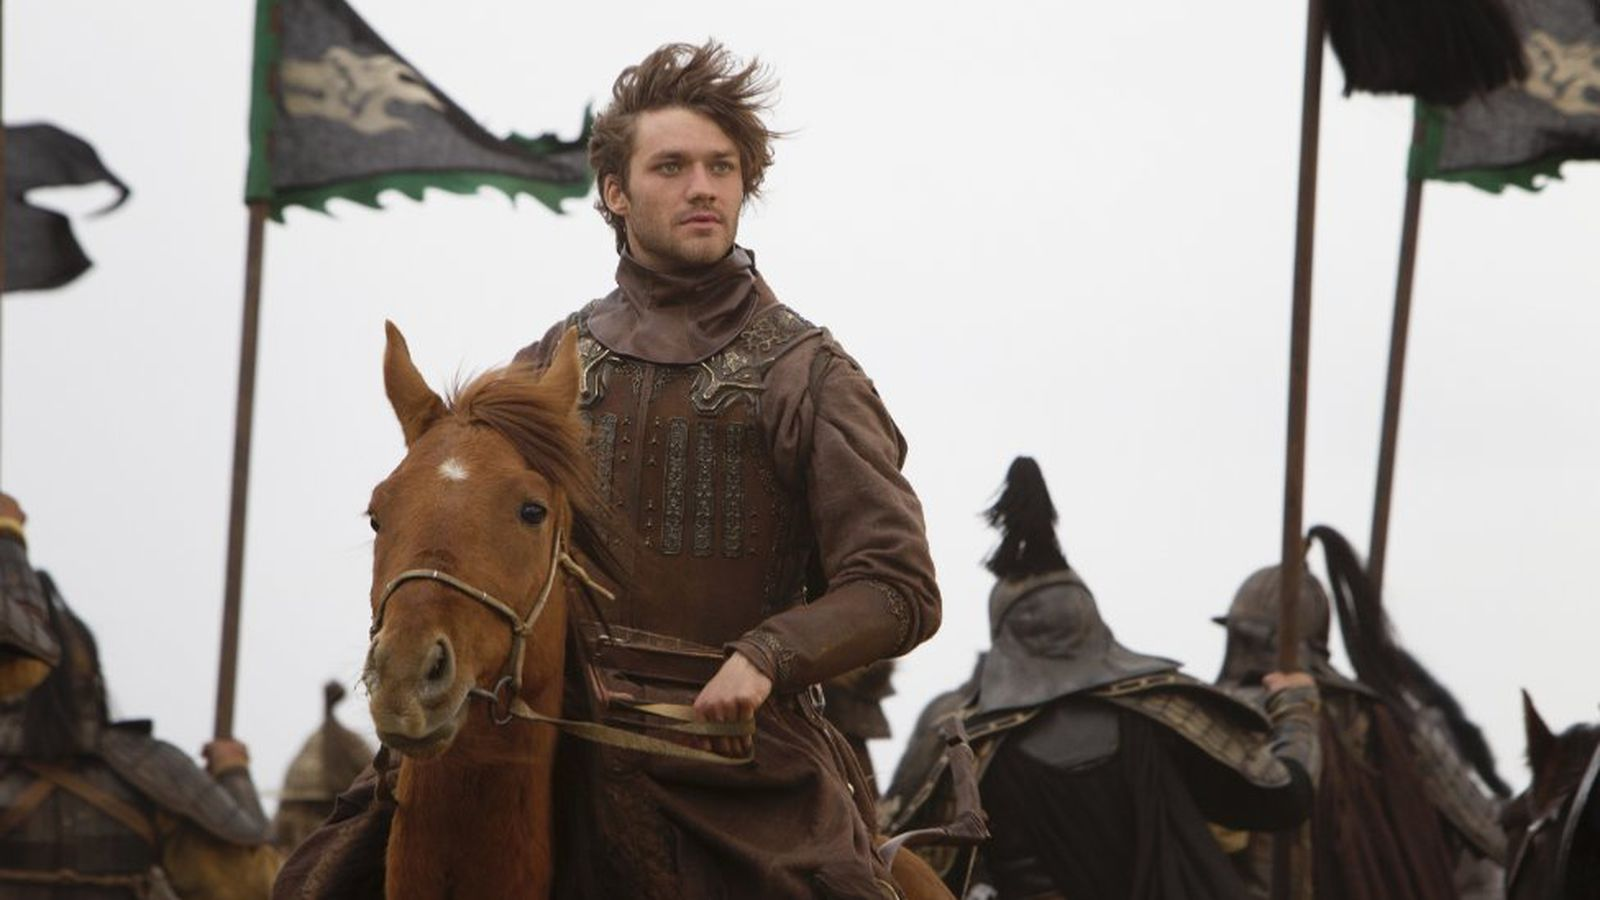 Marco Polo is Netflix's $90 million rip-off of Game of Thrones | The Verge